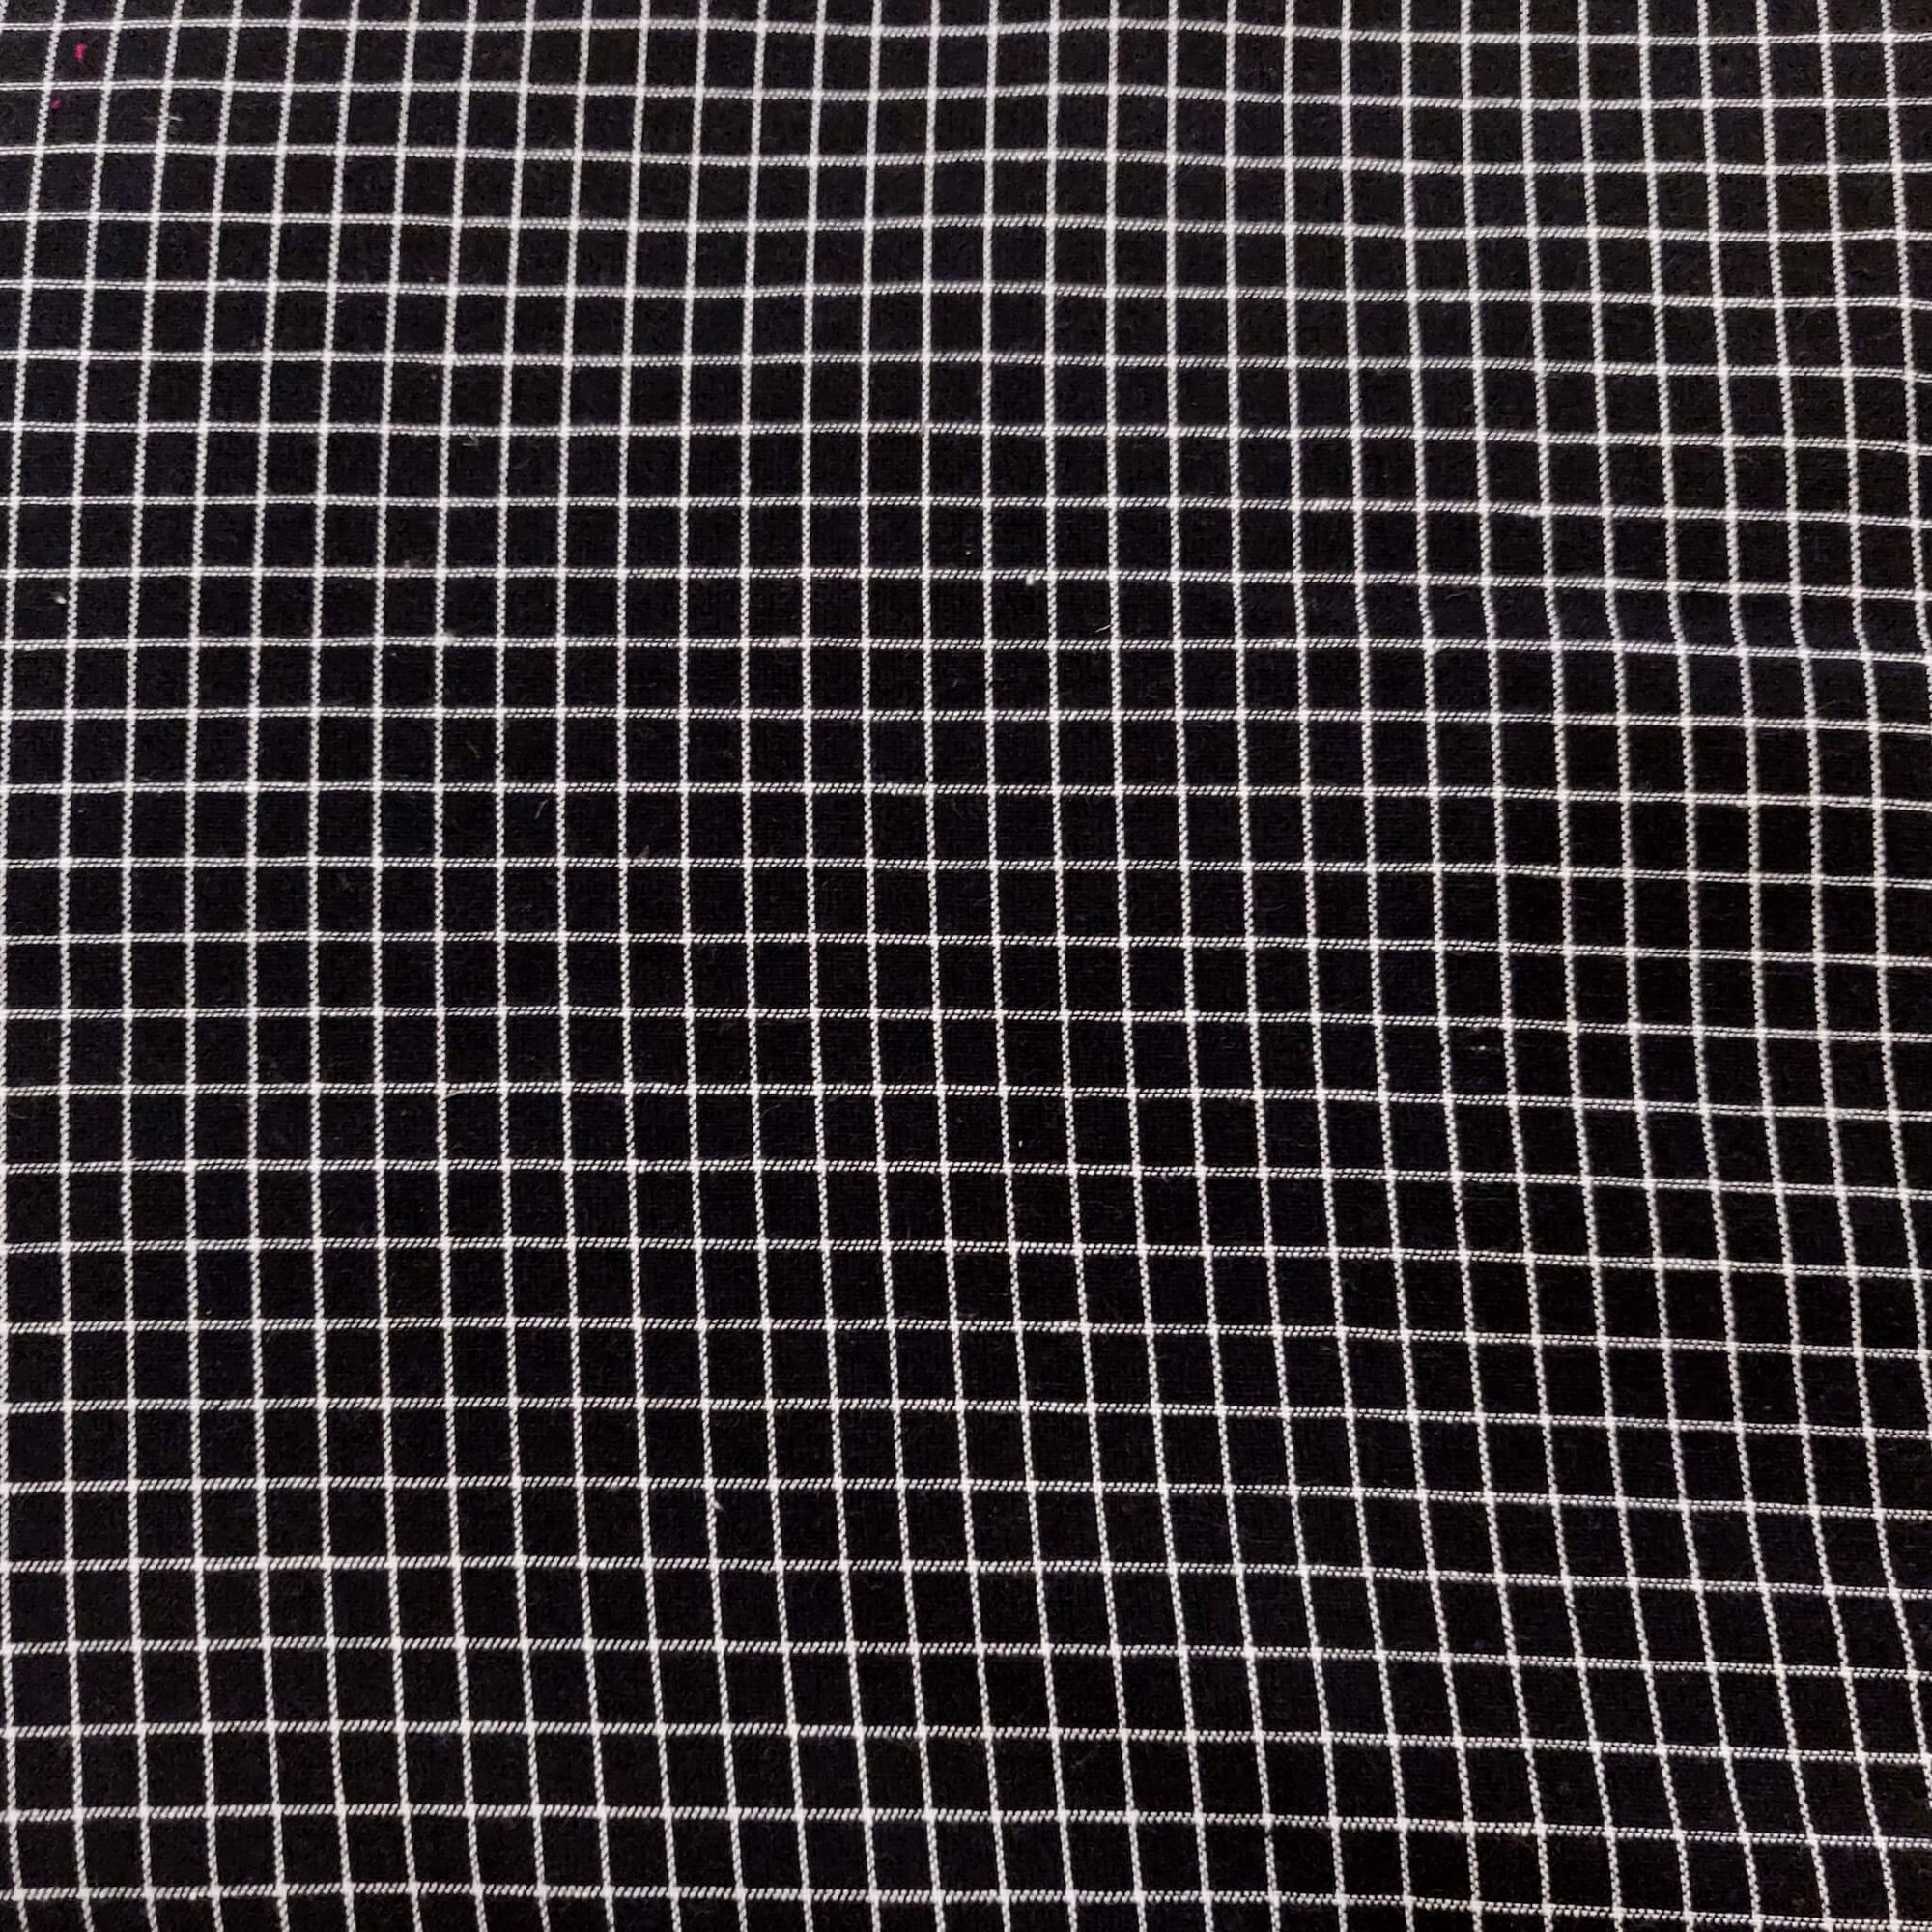 Pure Cotton Black With White Checks Woven Fabric